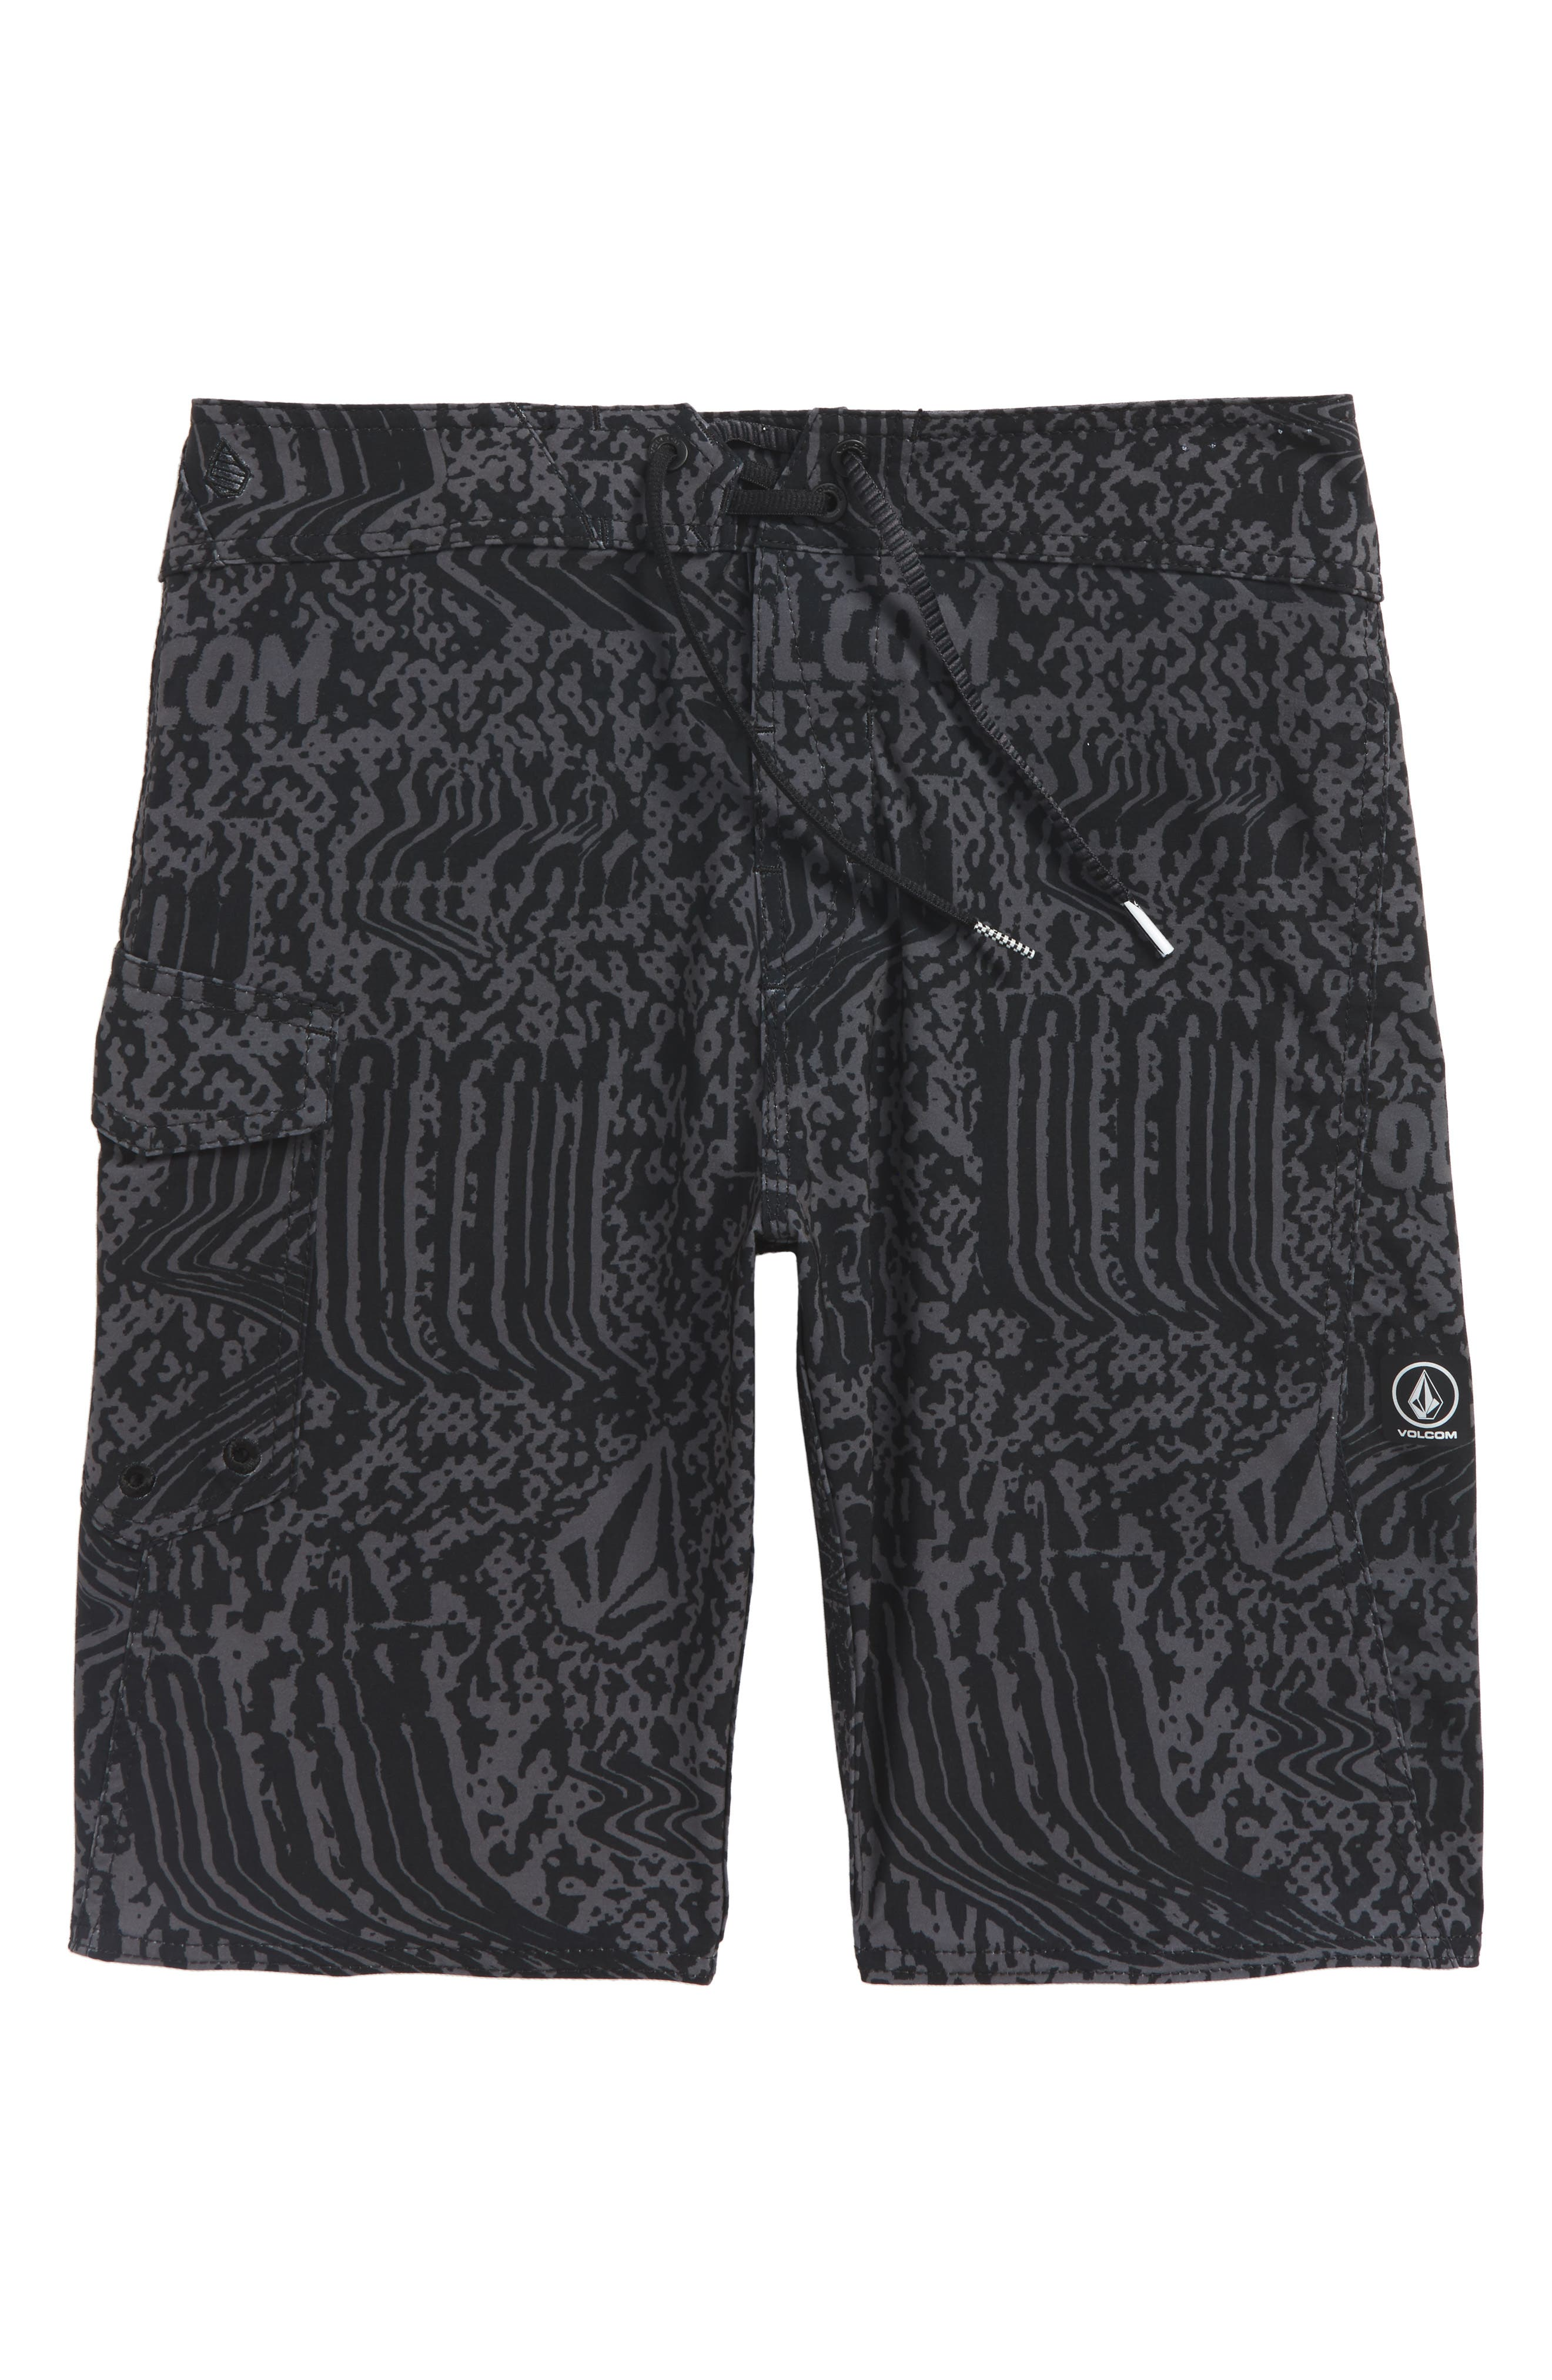 Logo Plasm Mod Board Shorts,                         Main,                         color, ASPHALT BLACK